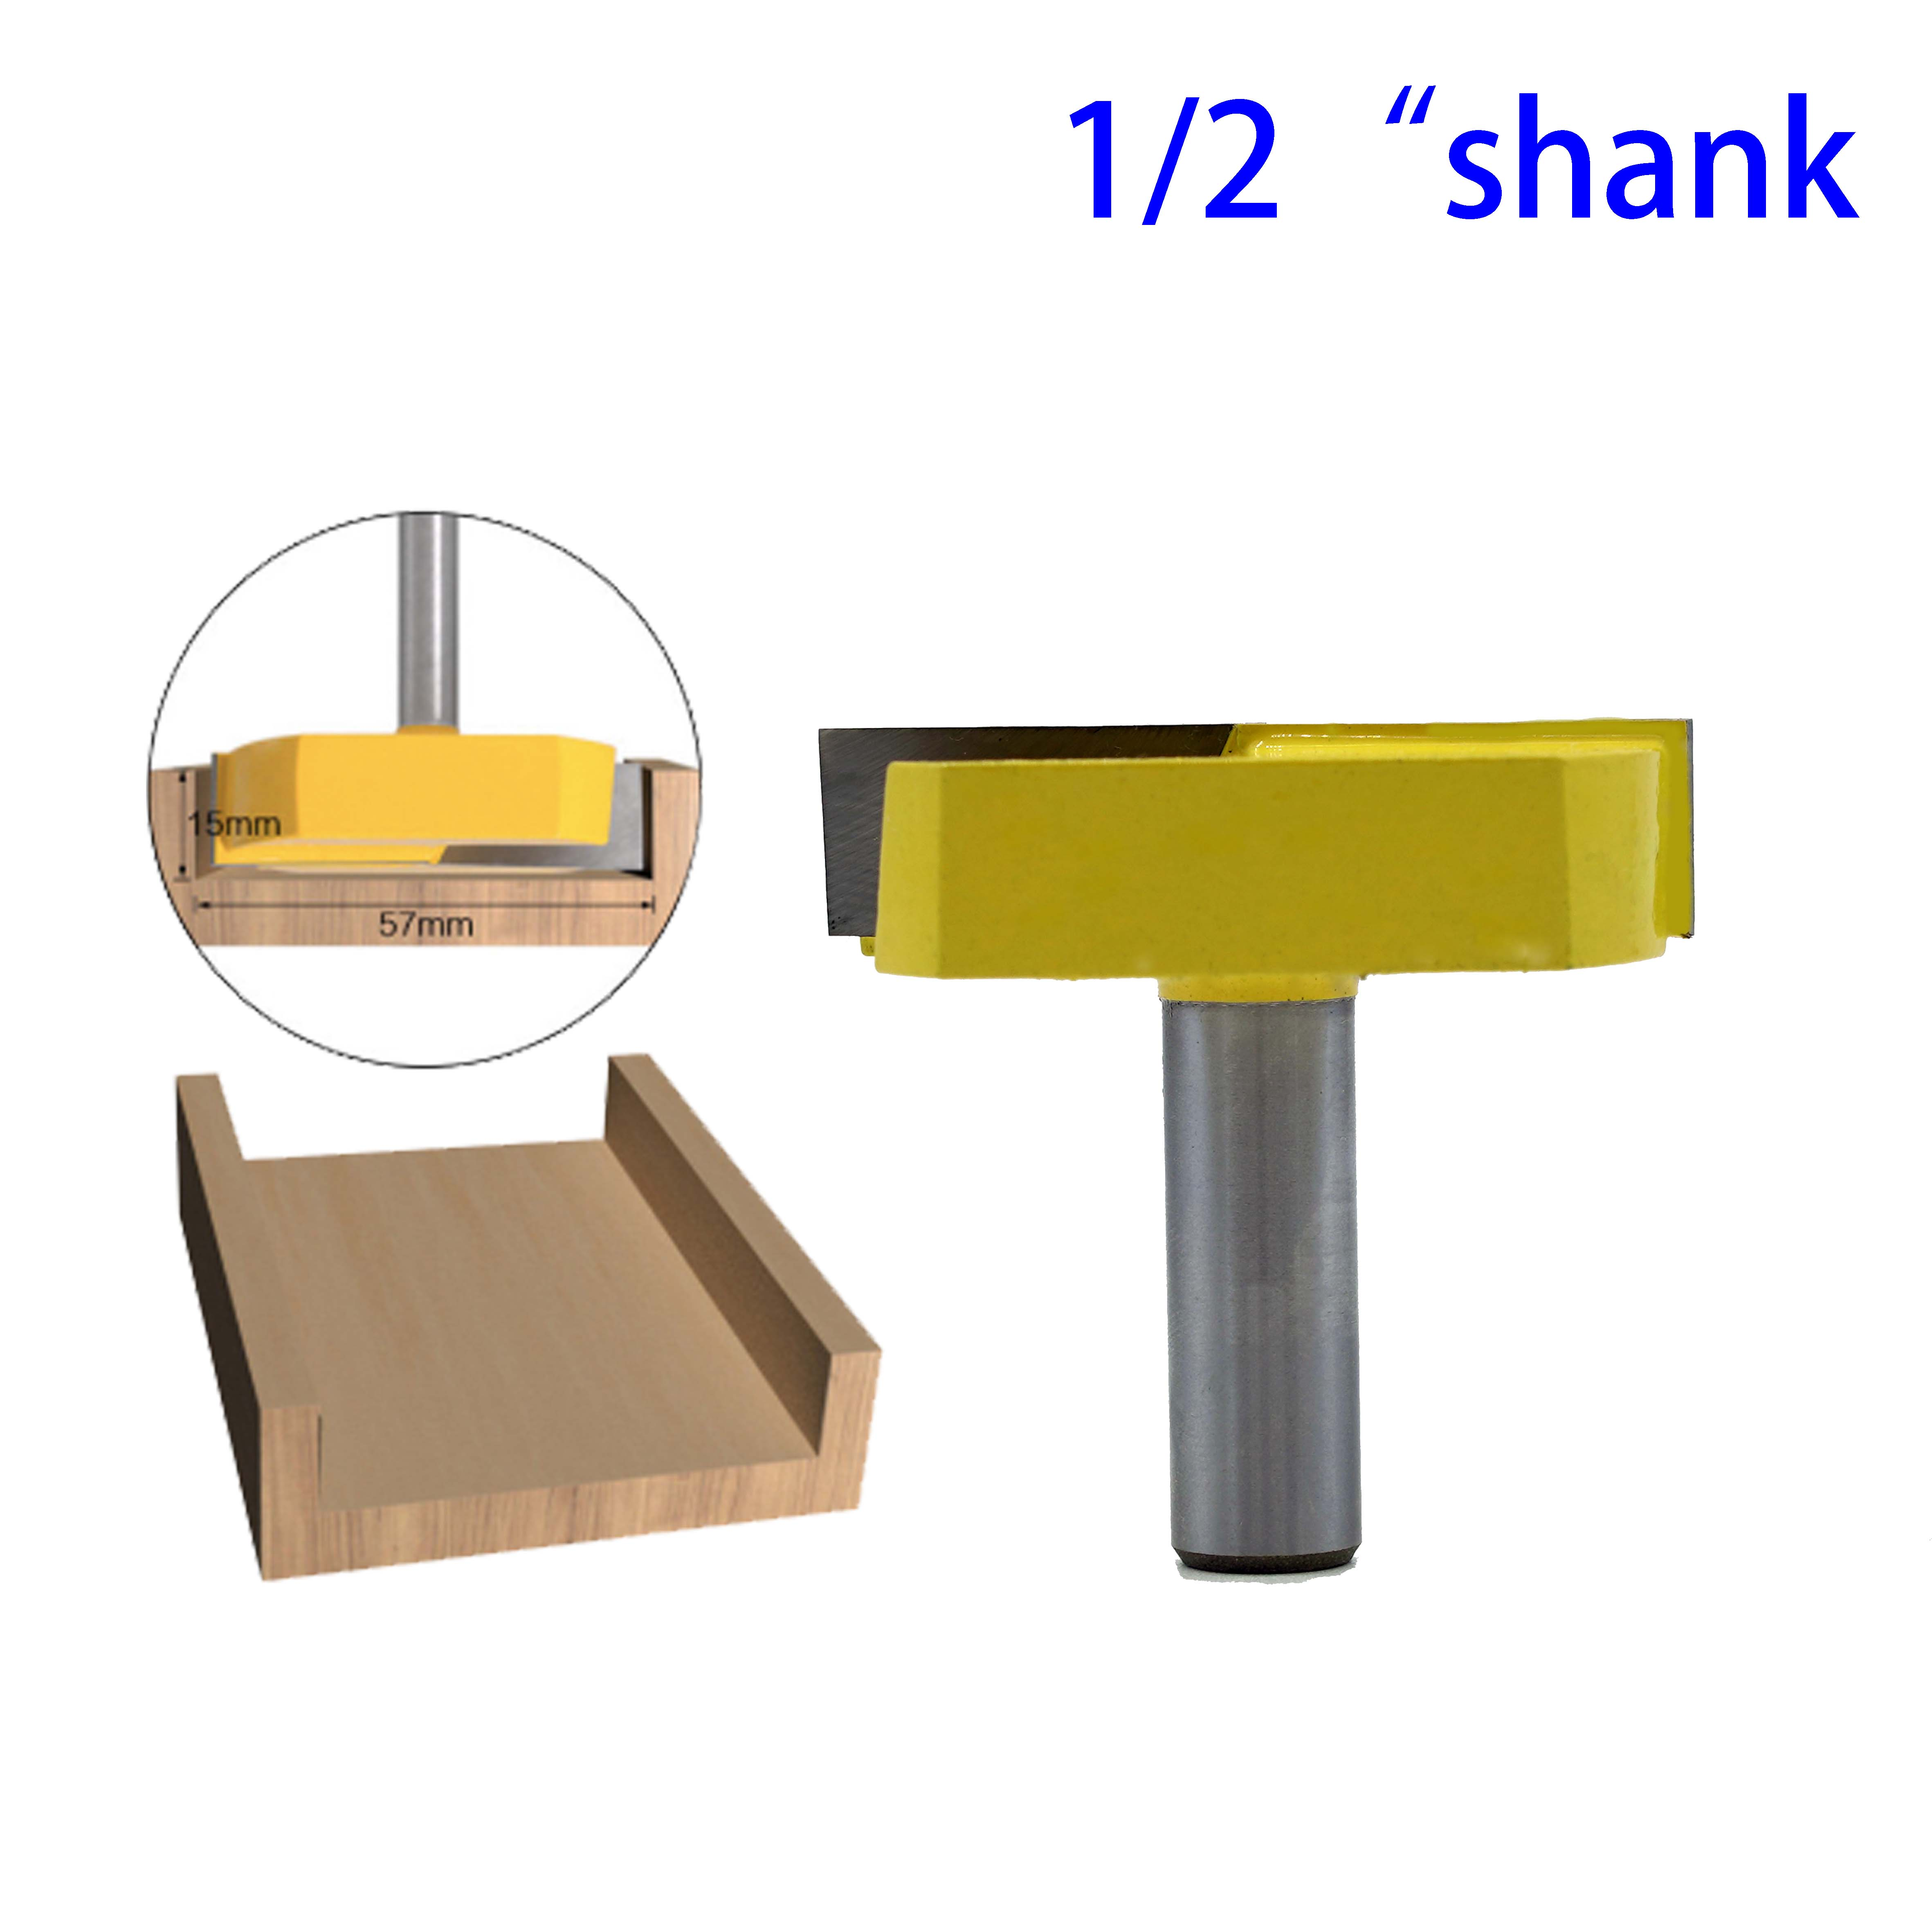 1pc 1/2 Shank Cleaning Bottom Router Bits Milling Cutter Wood Cutters 2-3/16 Cutting Diameter For Surface Planing Router Bit